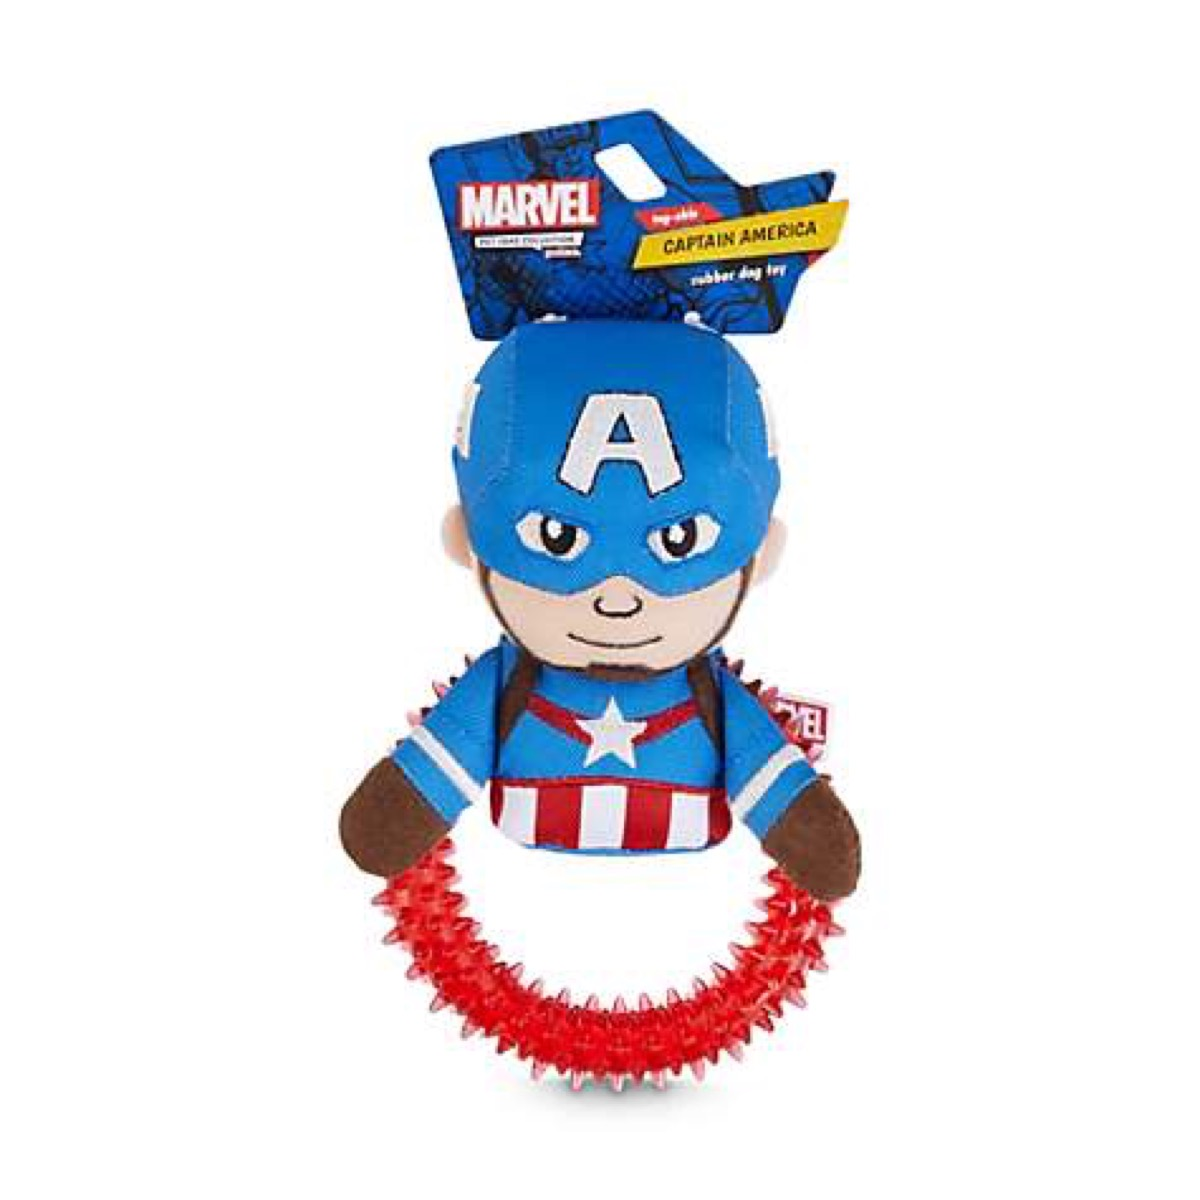 captain america plush dog toy, best chew toys for puppies